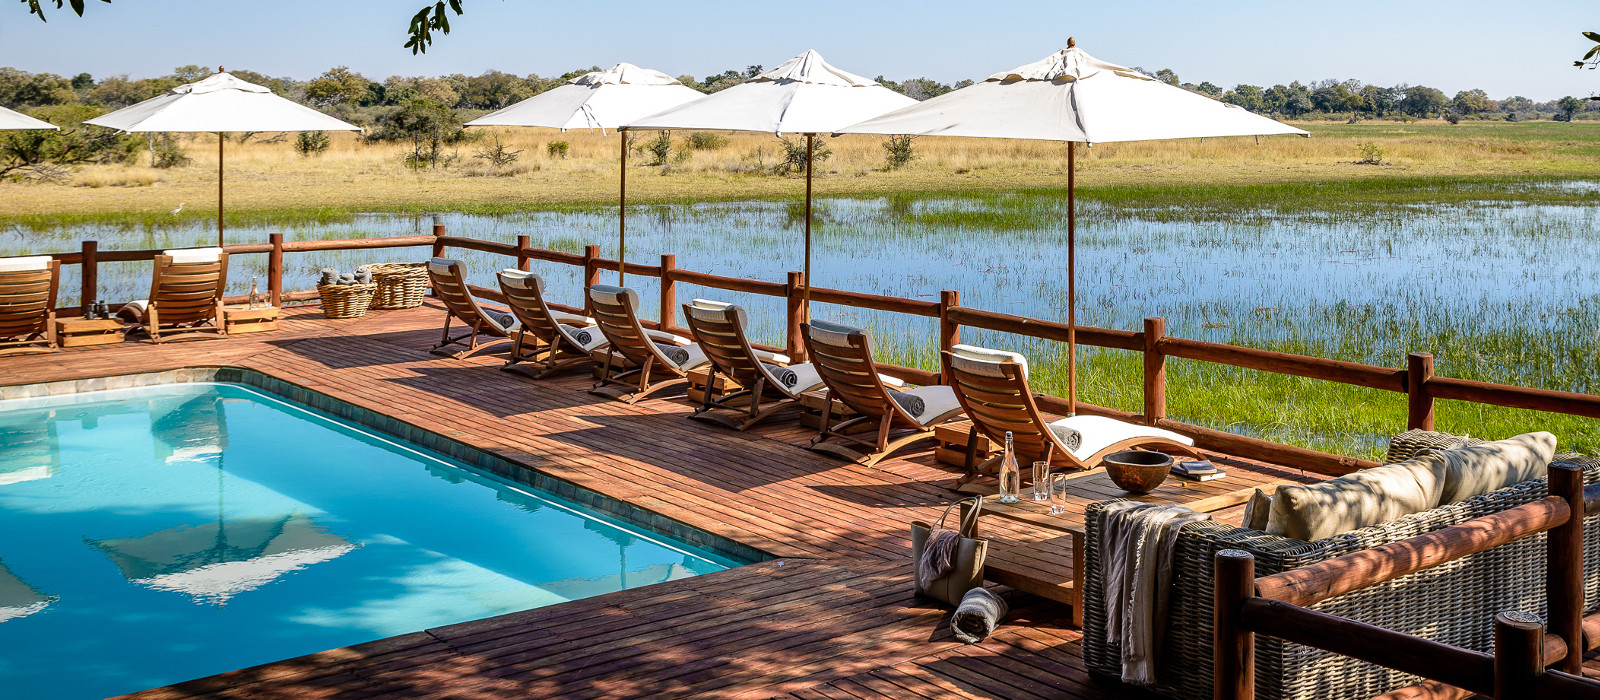 Hotel Chief's Camp Botswana